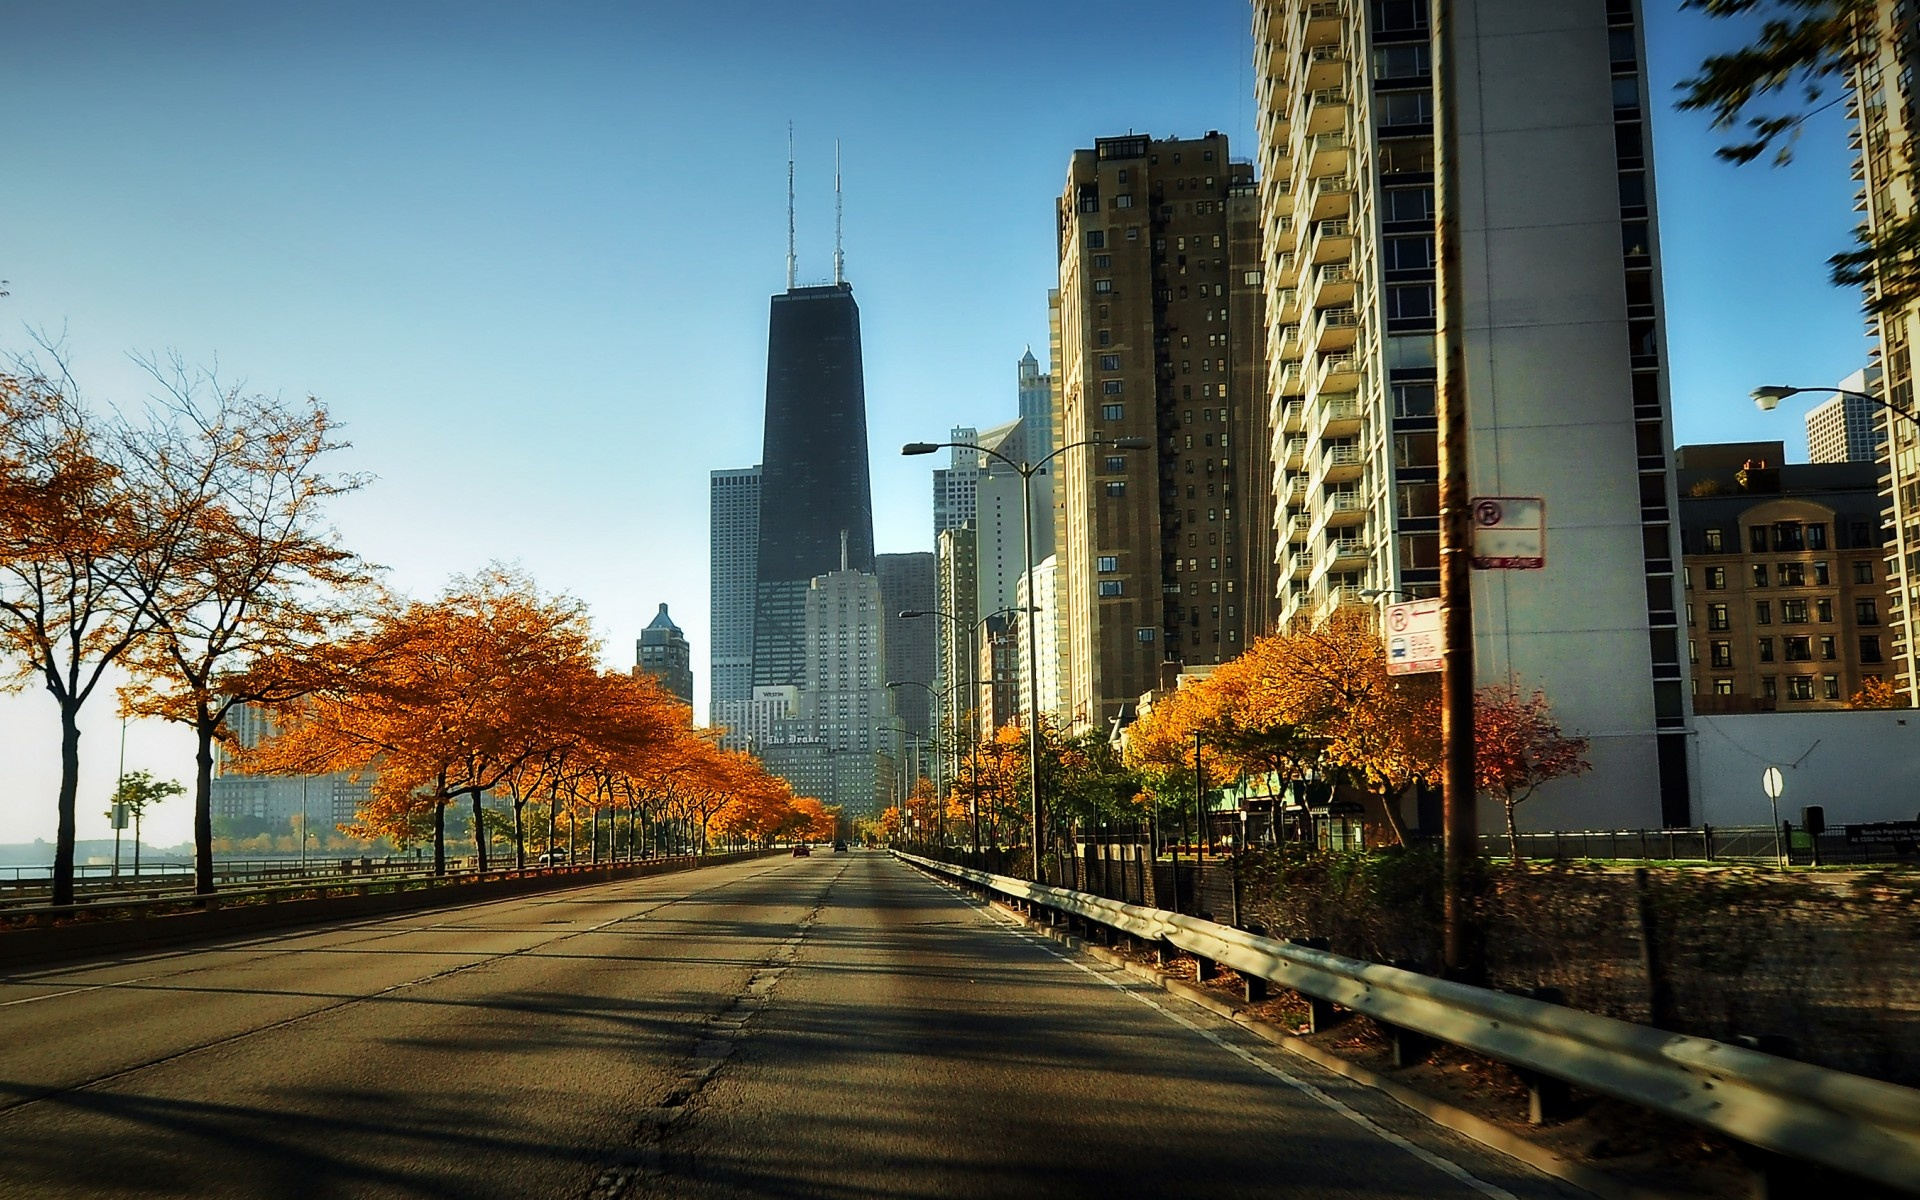 Wallpaper usa illinois chicago city embankment road 1920x1200